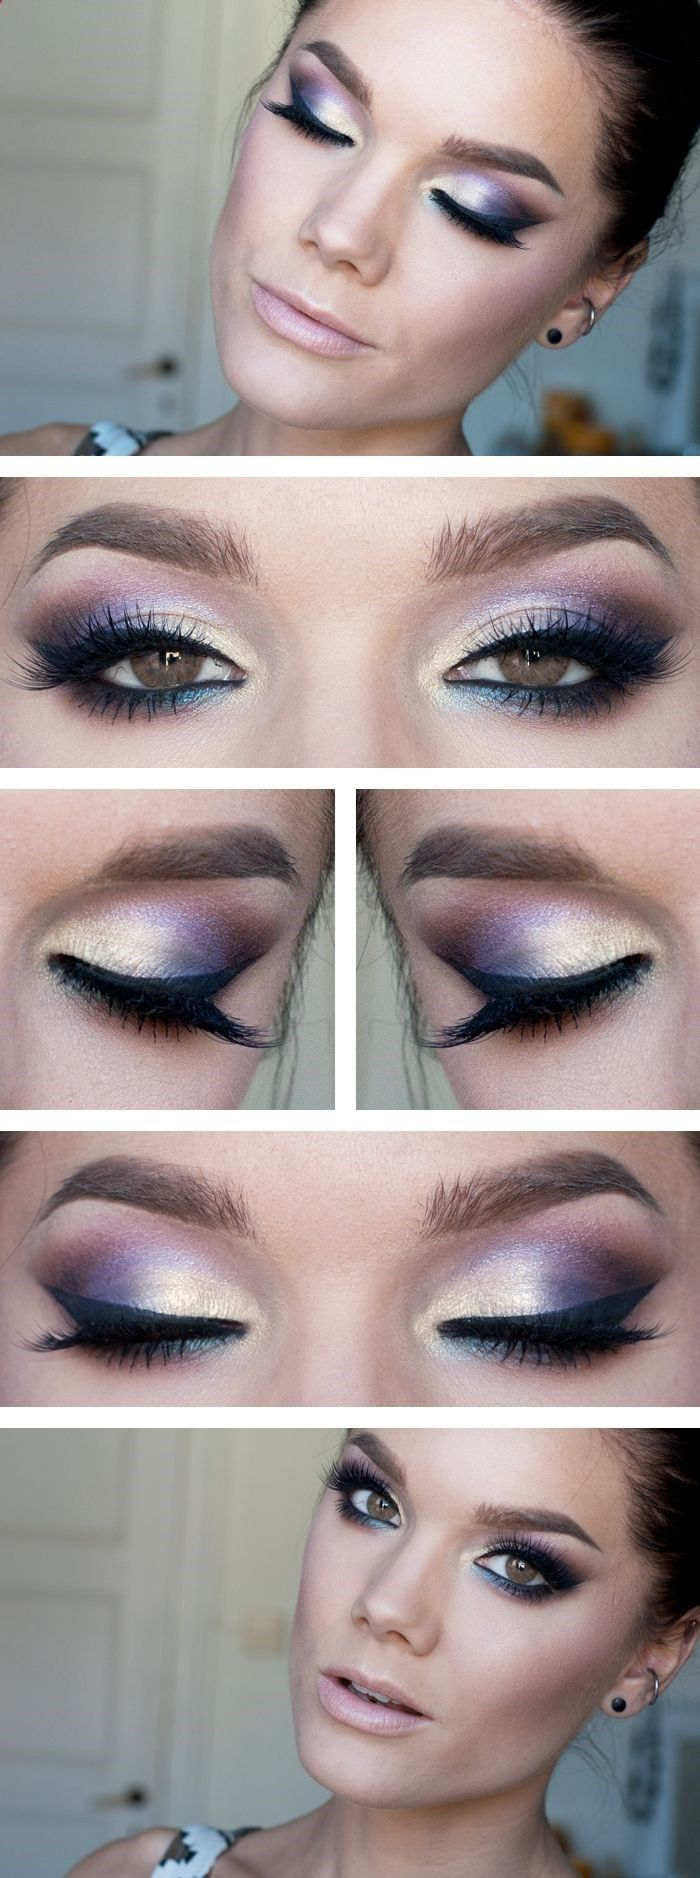 Makeup with light pink dress   Best images about intense beauty on Pinterest  Bright eye makeup